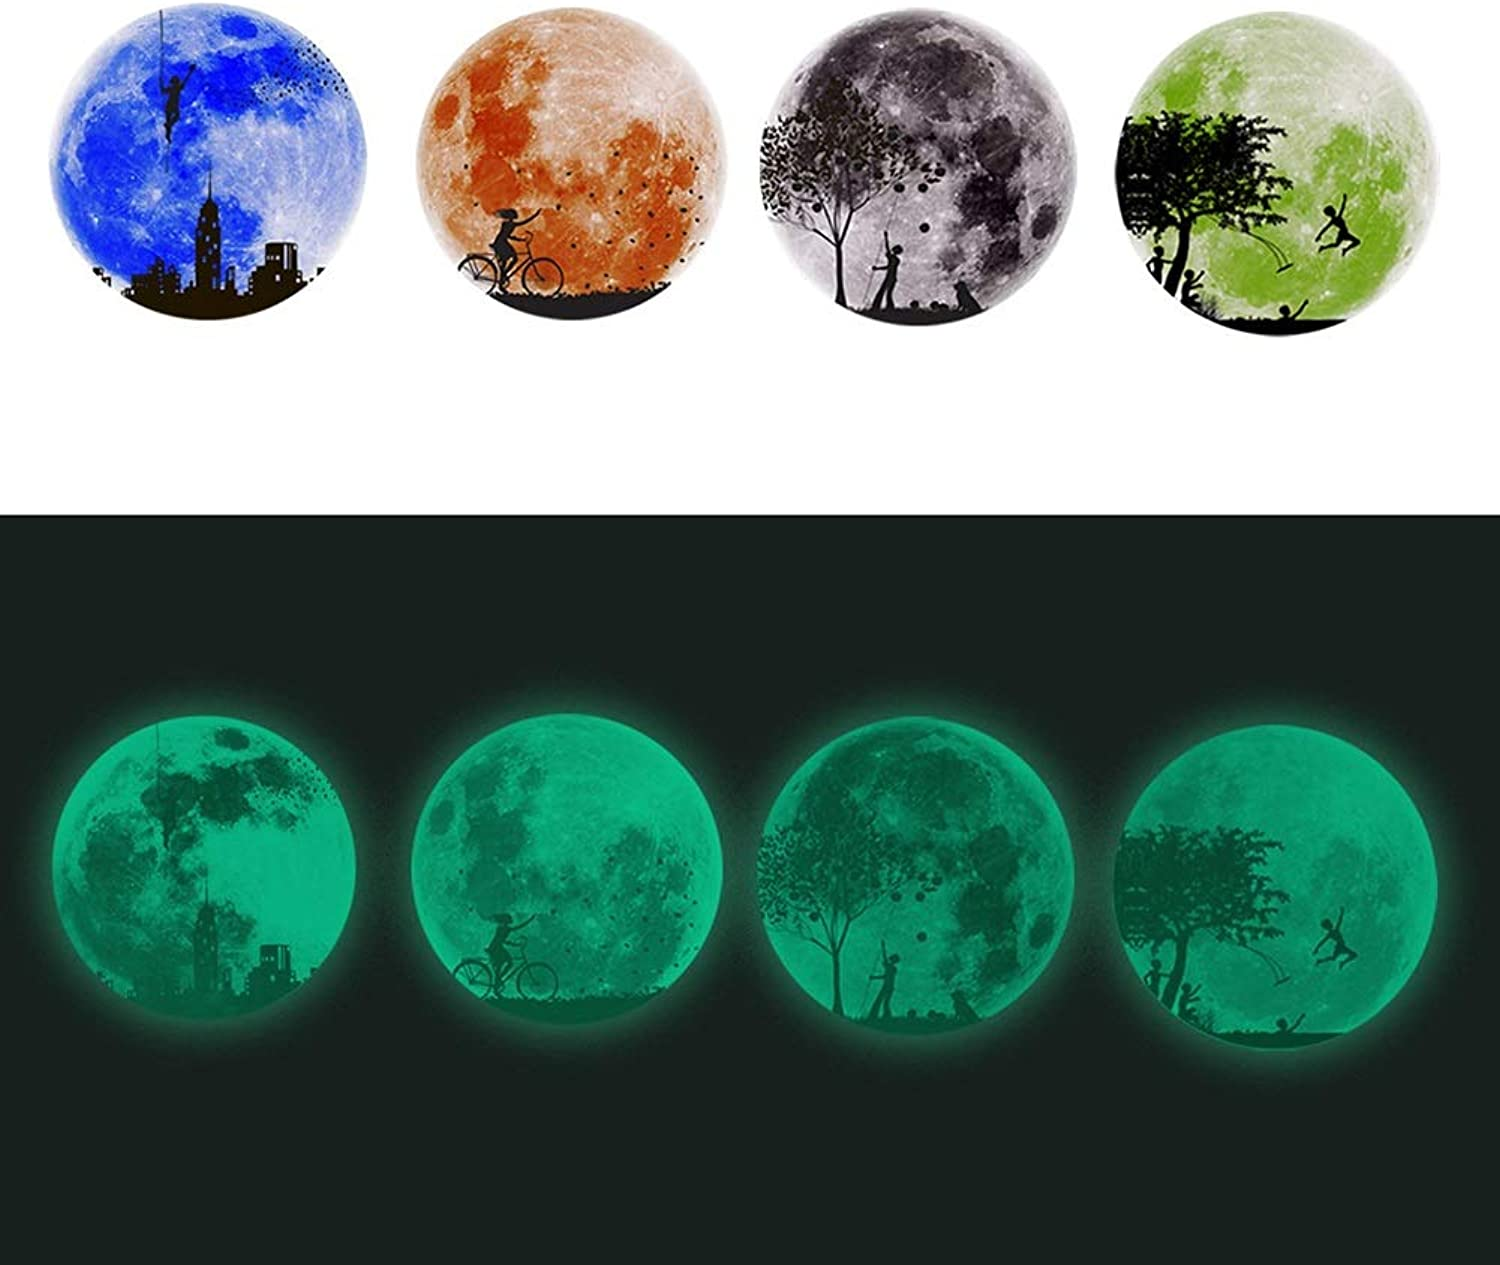 Glowing Wall Stickers, Moon Character Series DIY Living Room Bedroom Can Be Remove SelfSticking 30  30cm